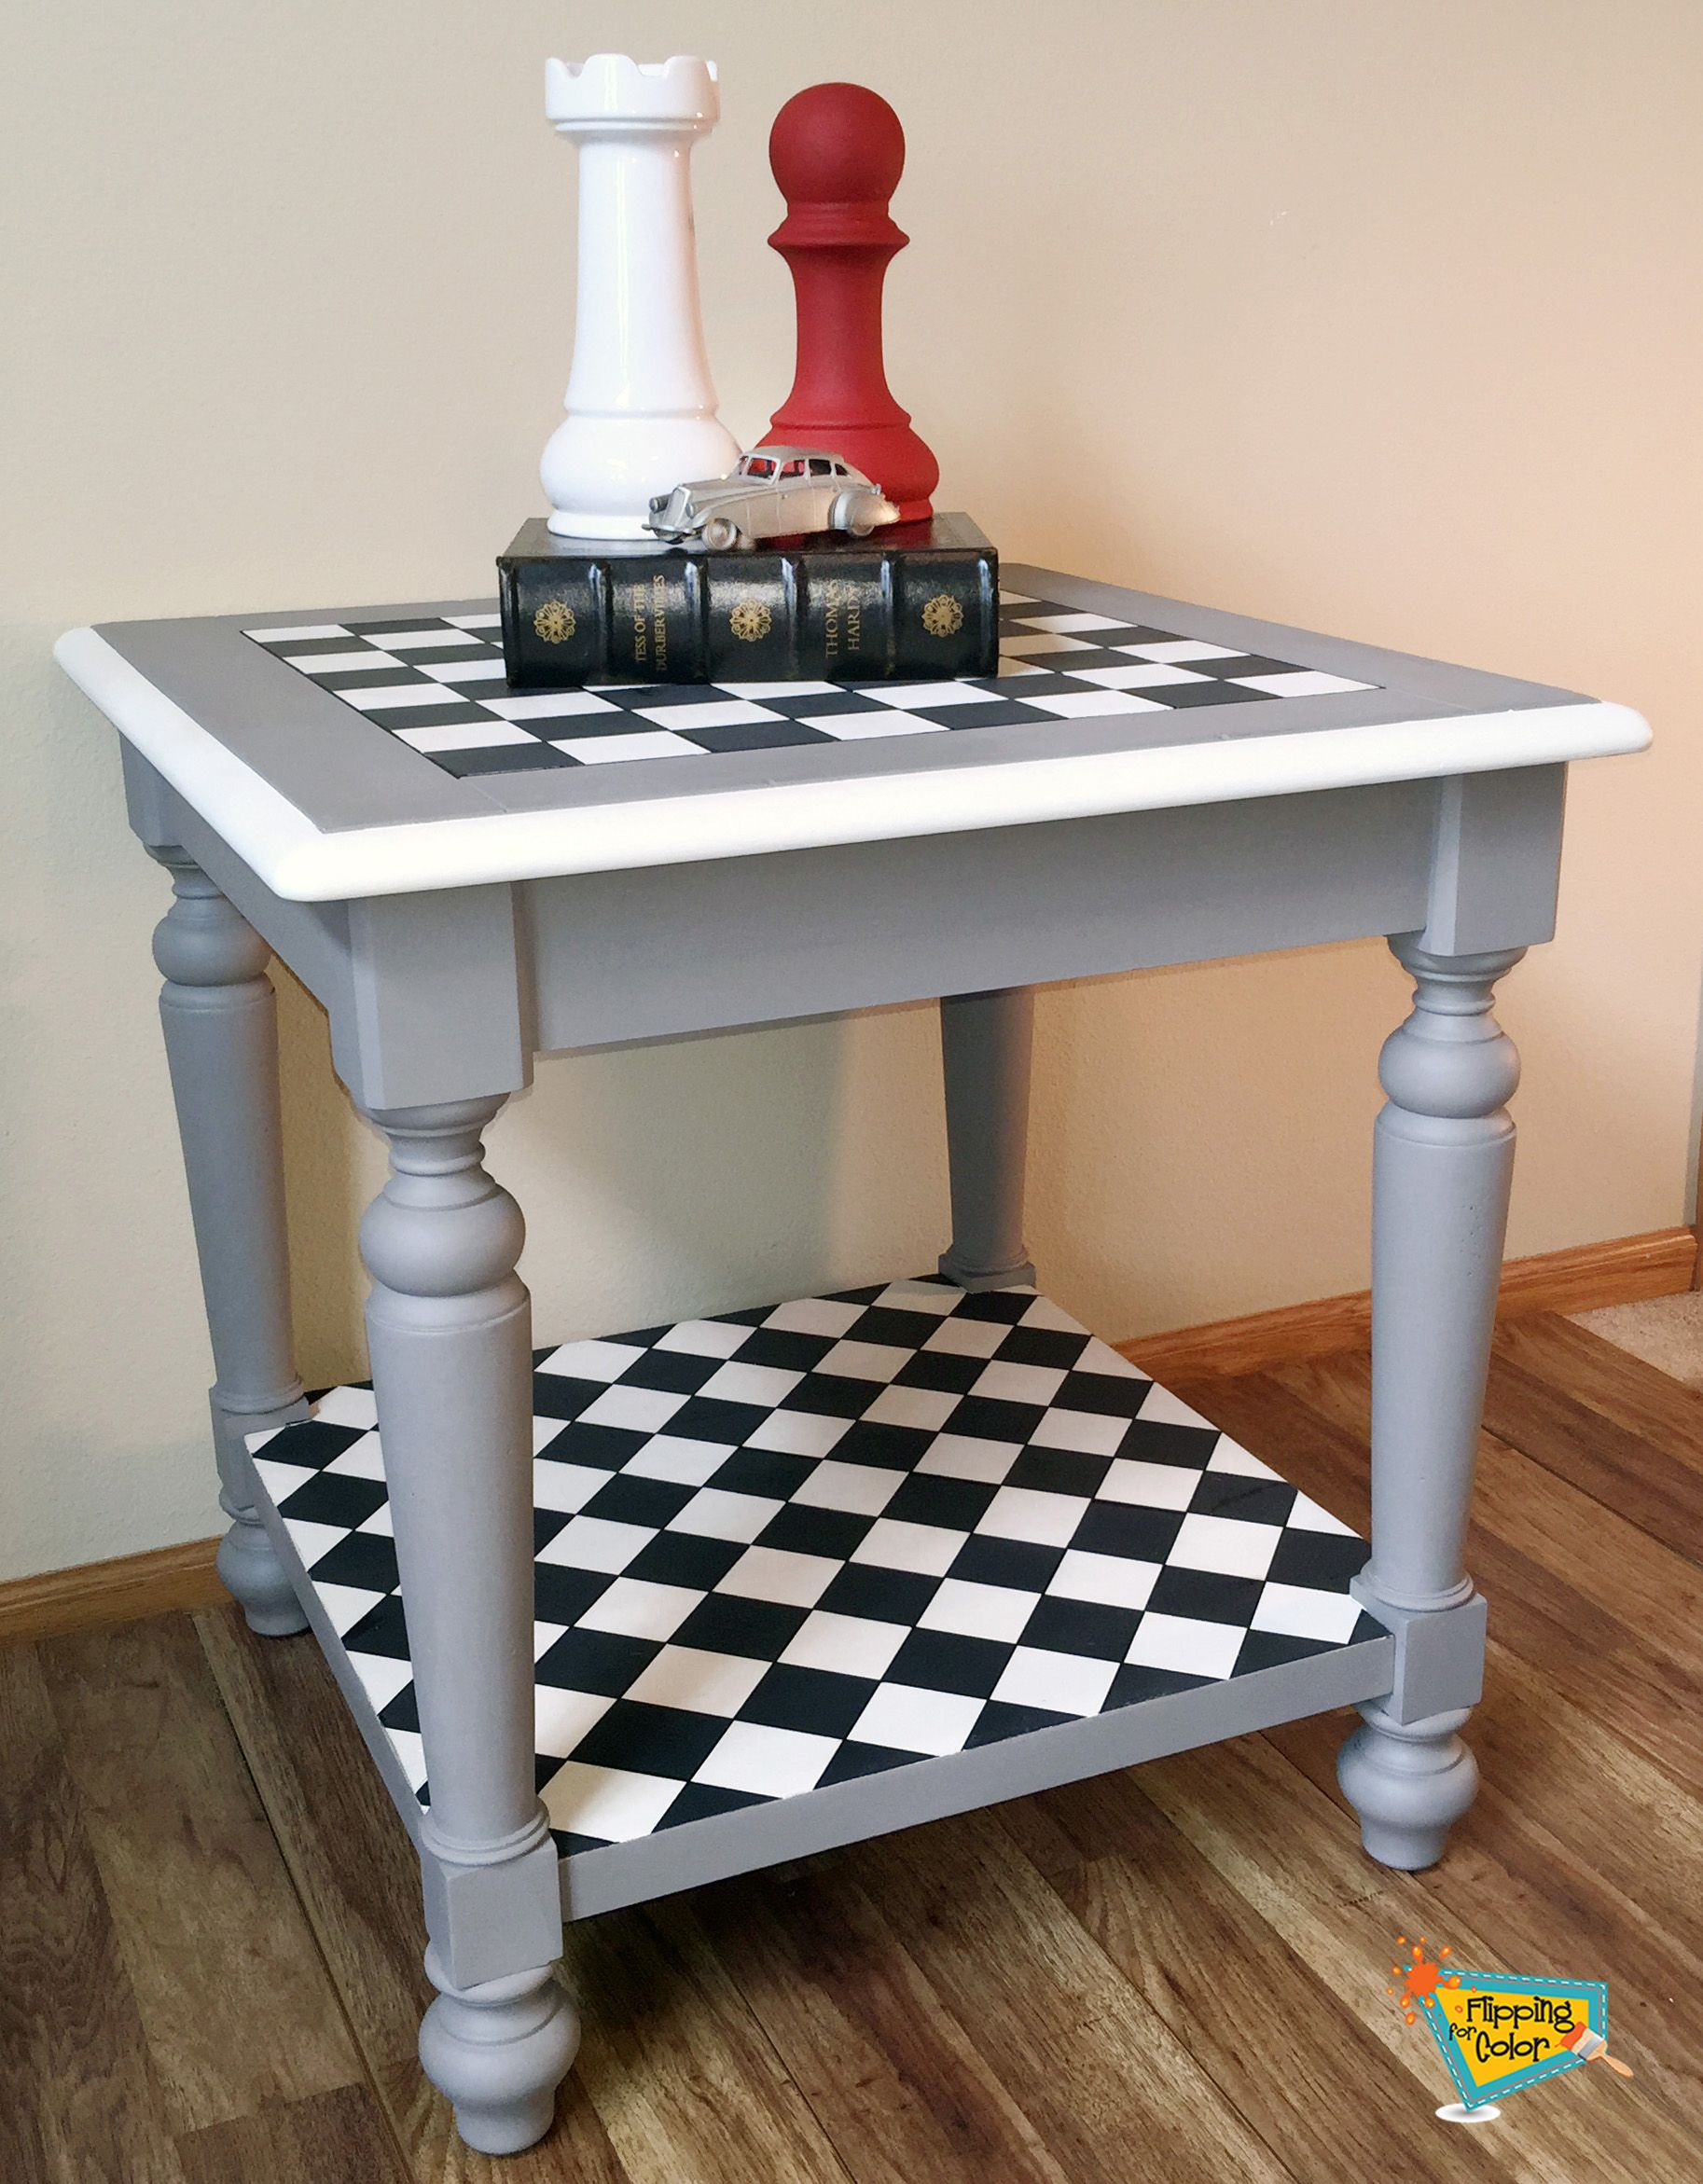 This Fun Table Features A Black And White Hand Painted Checkerboard Pattern On Top Perfect F Painted Coffee Tables Painted Furniture White Painted Furniture [ 2342 x 1826 Pixel ]